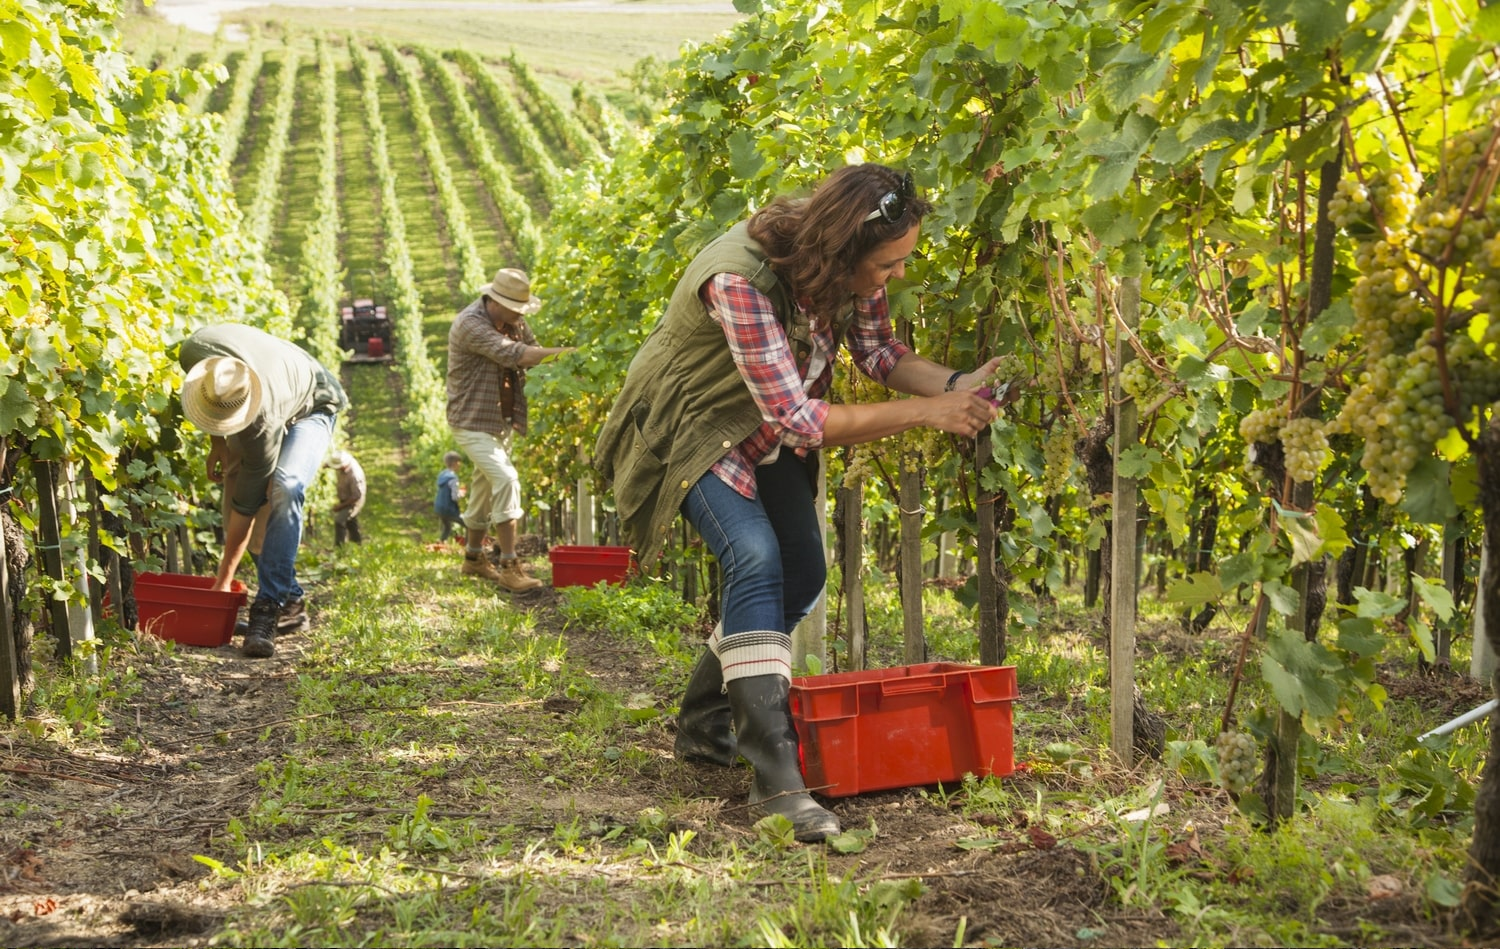 santa barbara county grape harvest 2019